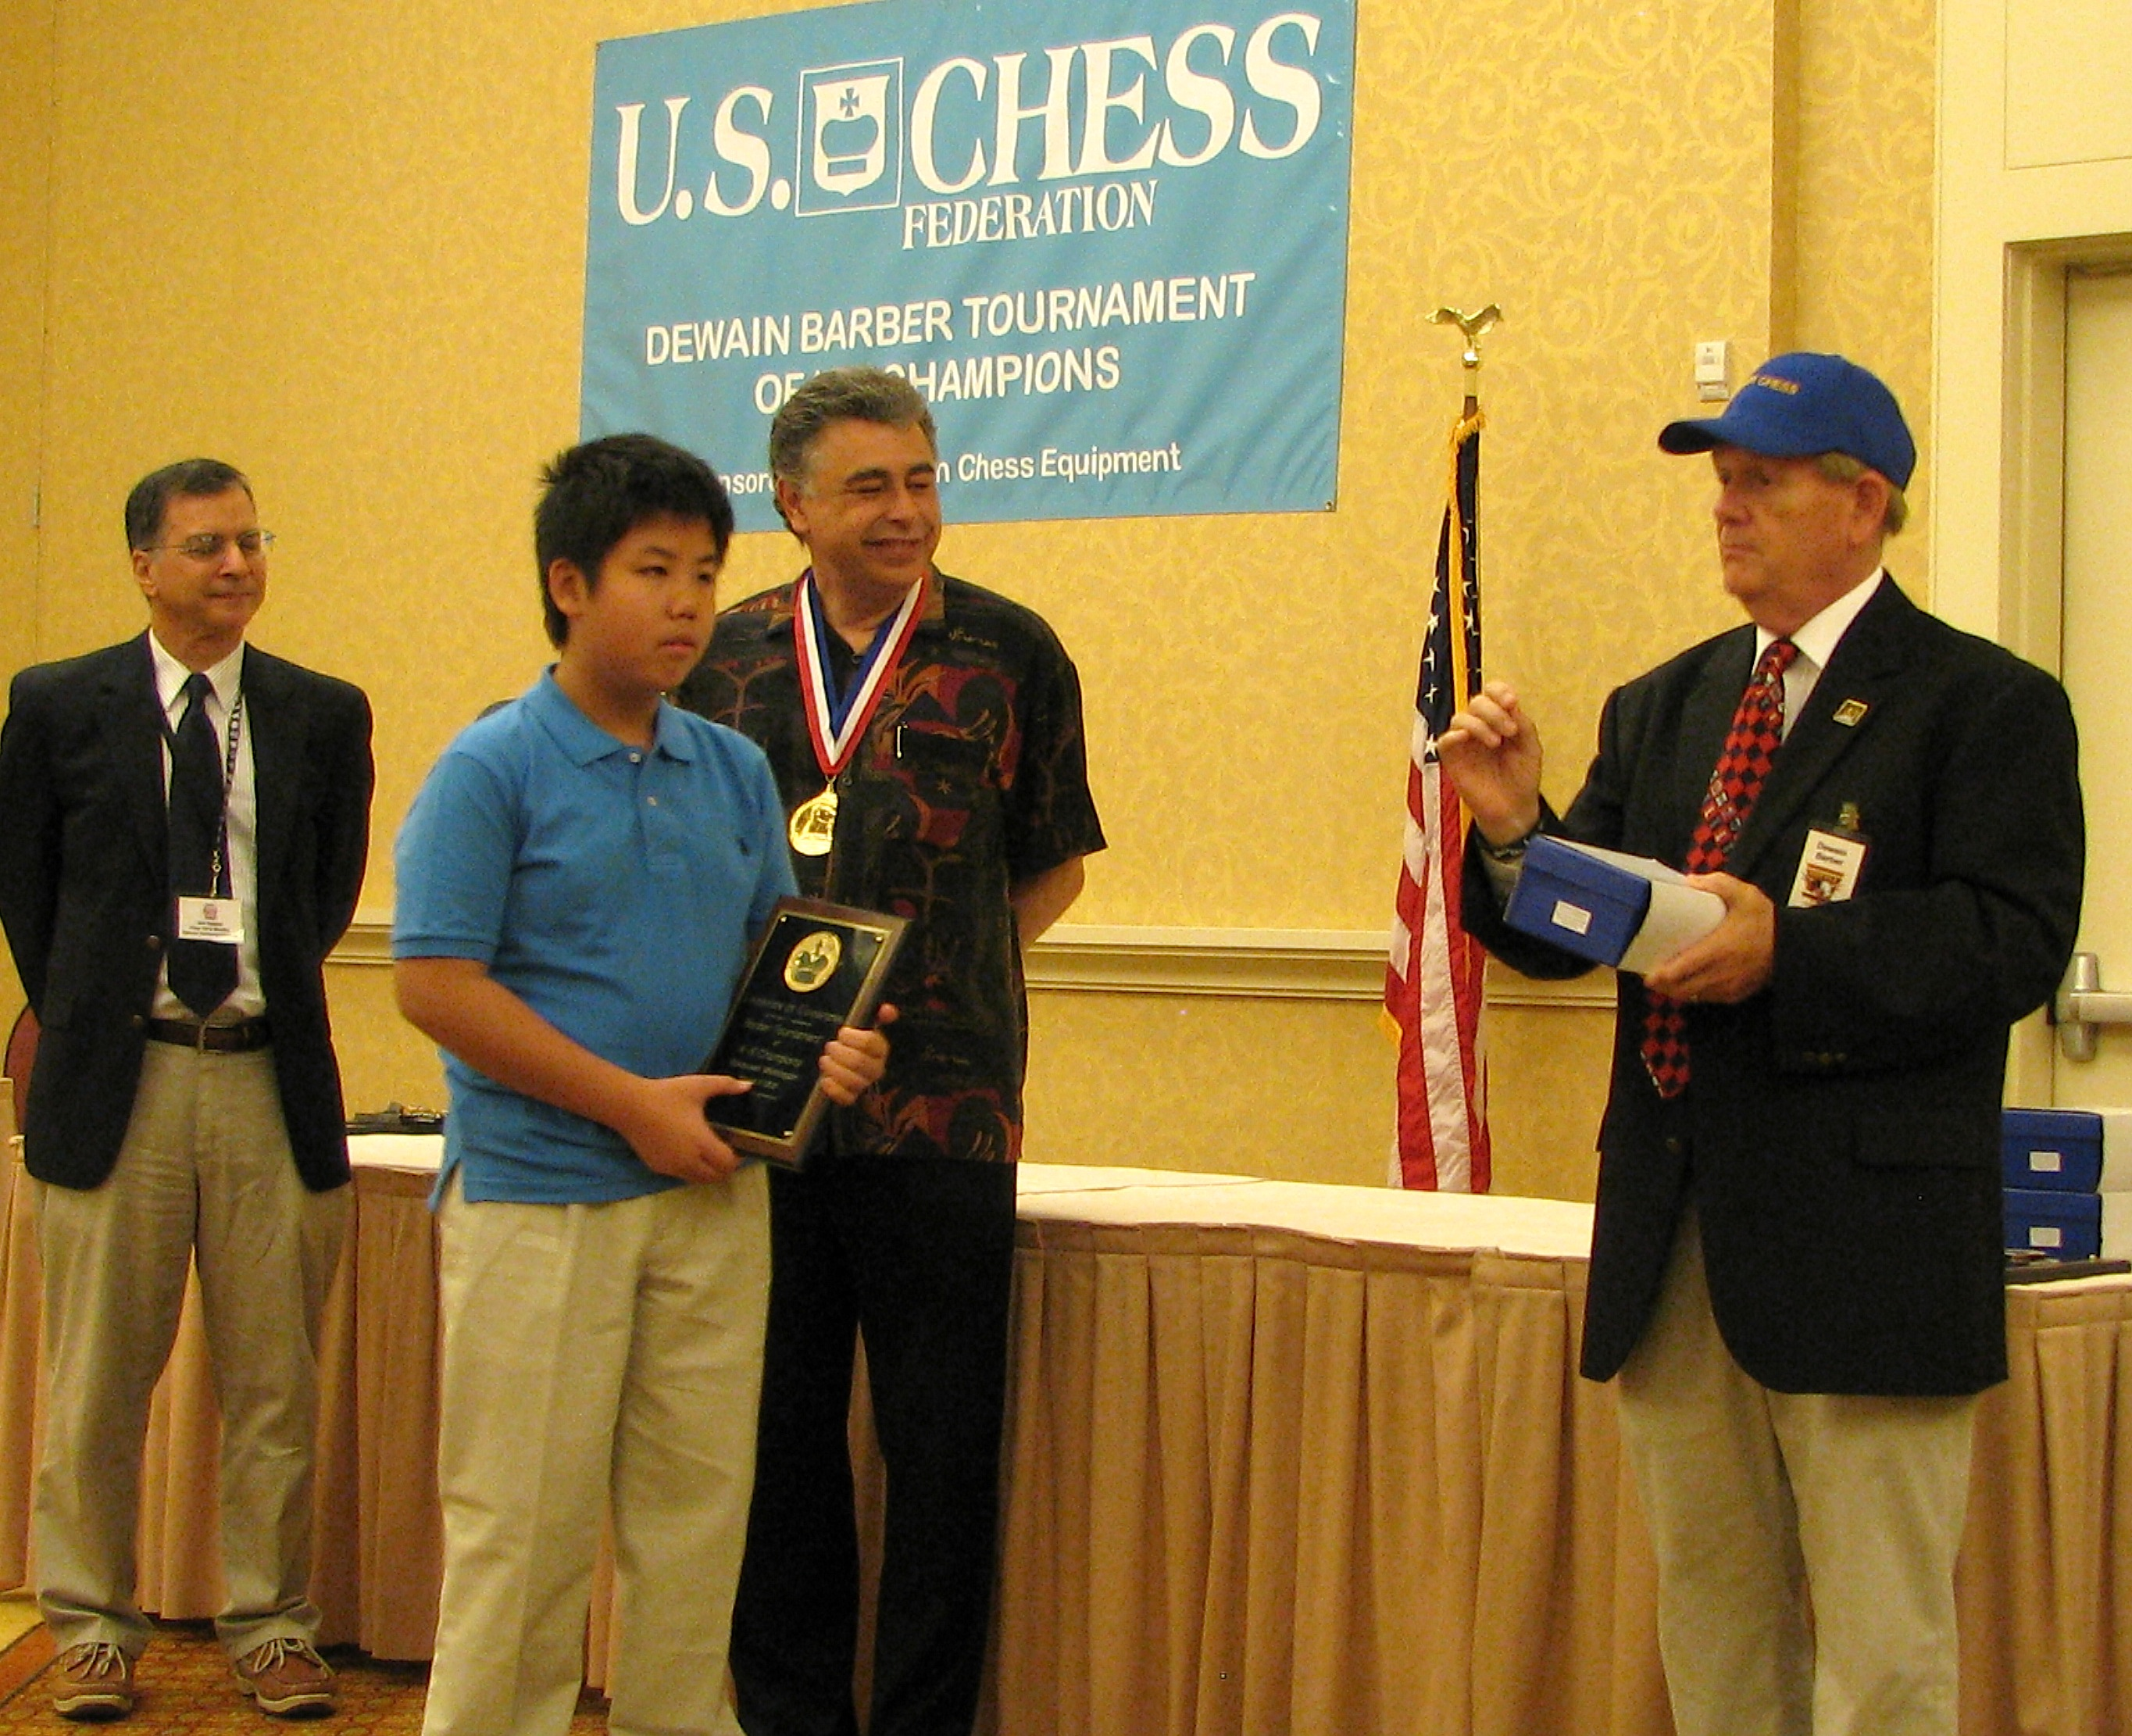 Tommy He, 2012 Barber Champion